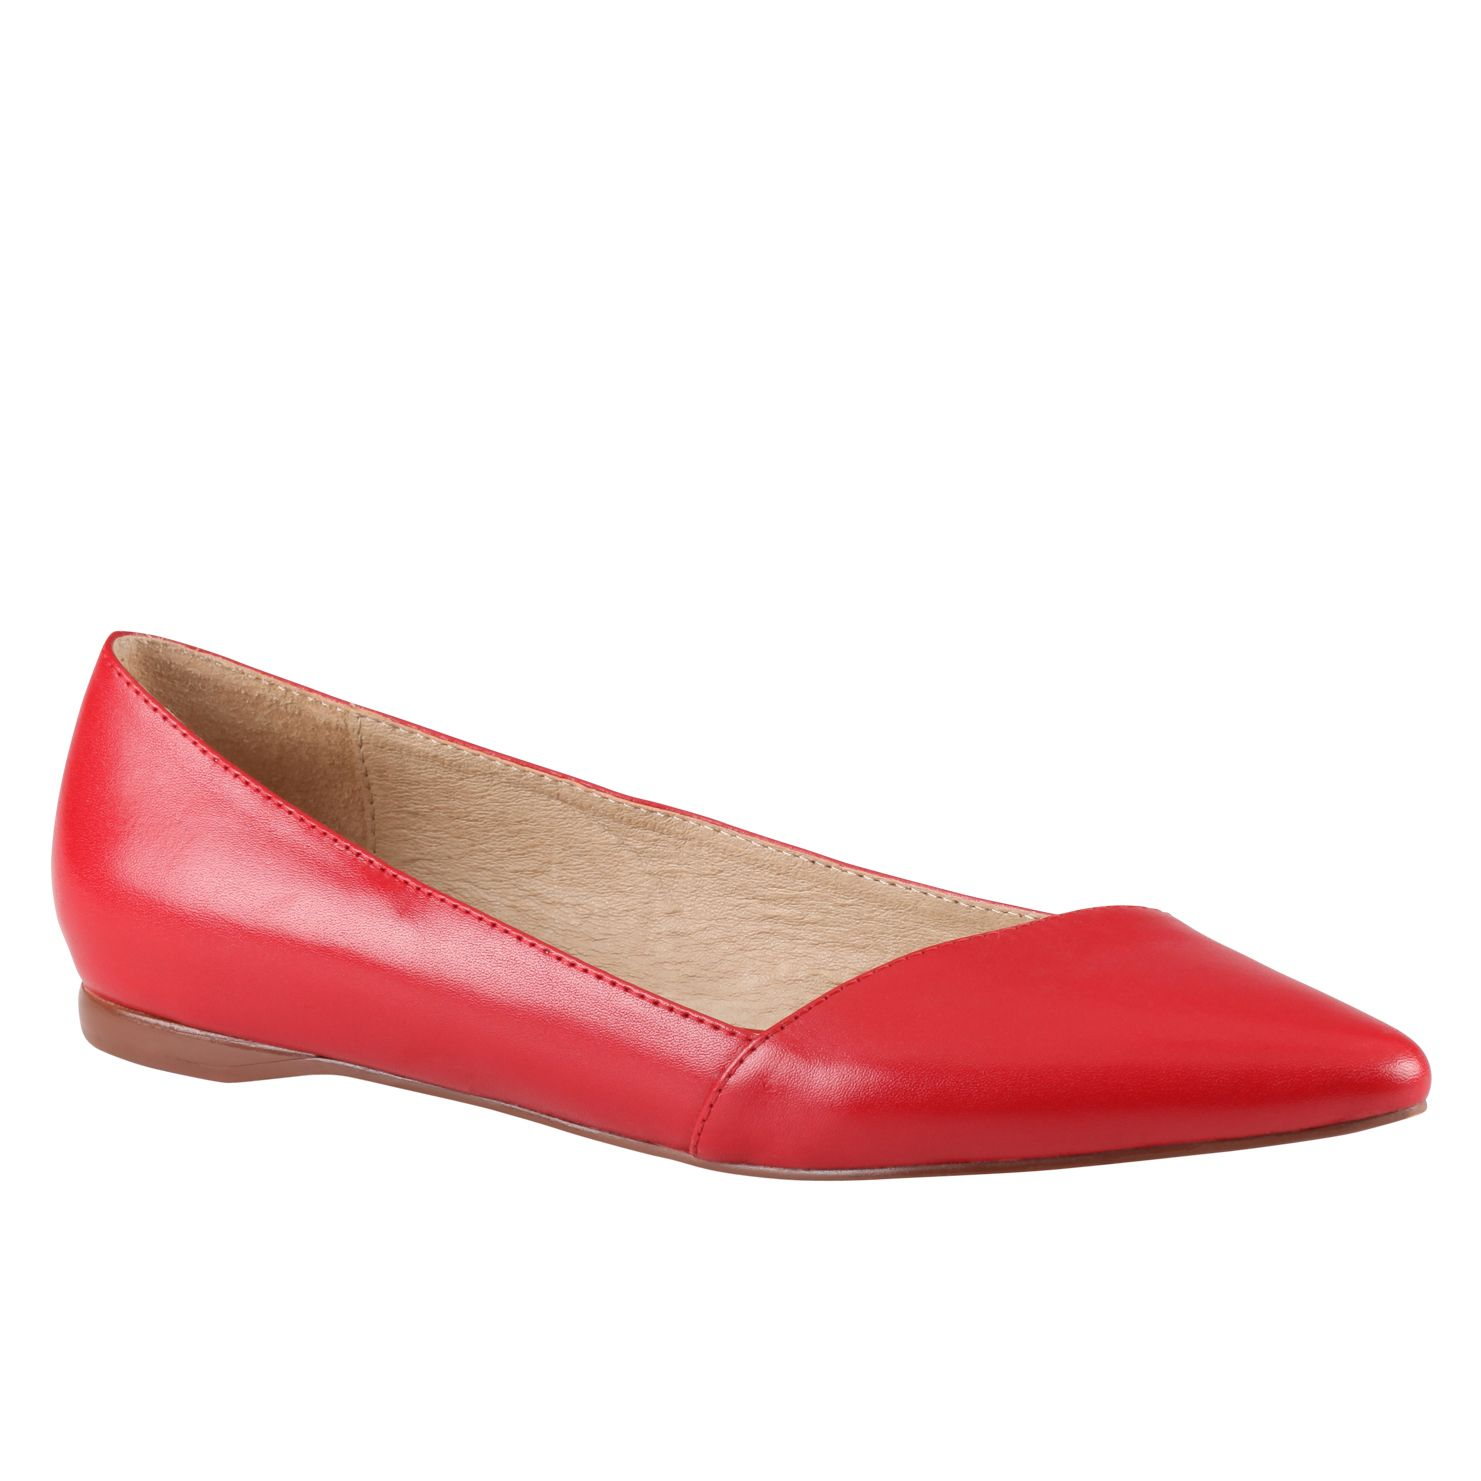 Aldo Dobrus Ballerina Shoes in Red | Lyst